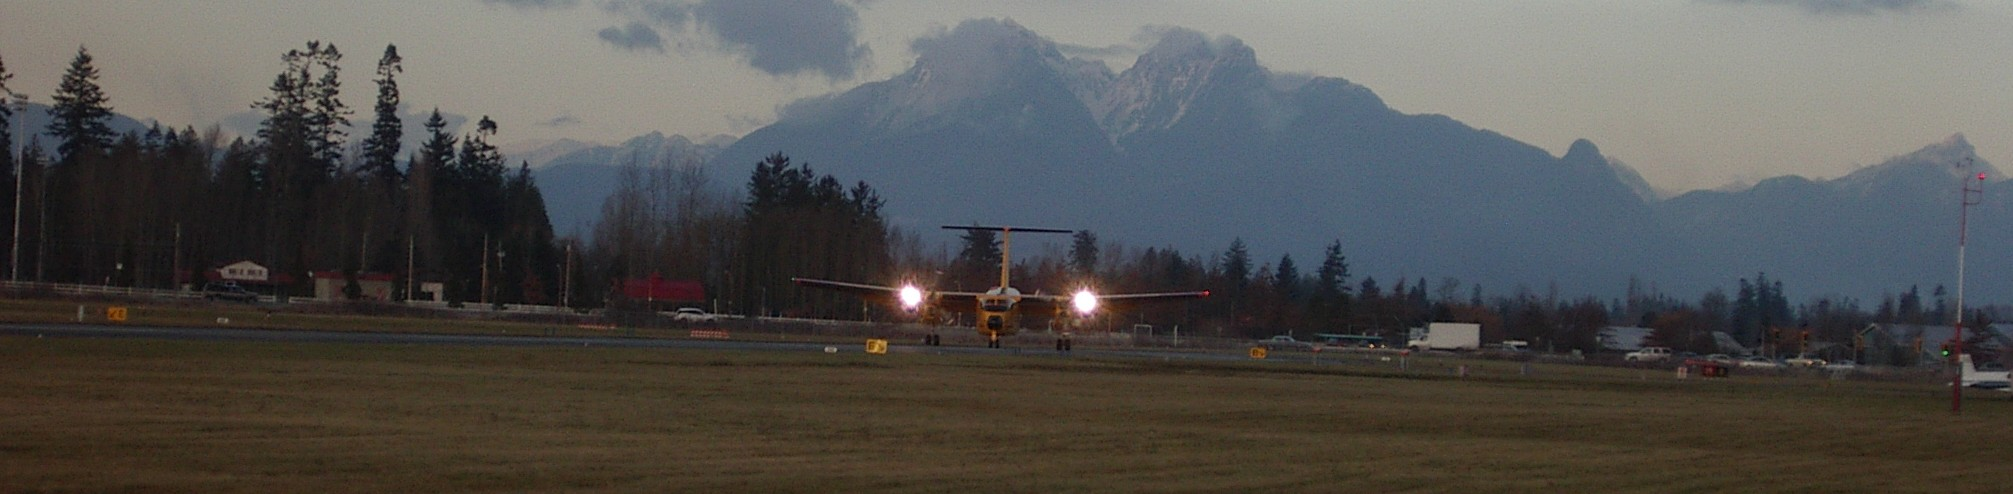 Canadian Airforce Buffallo, departing Langley Airport's Runway 19.  Langley Flying School.